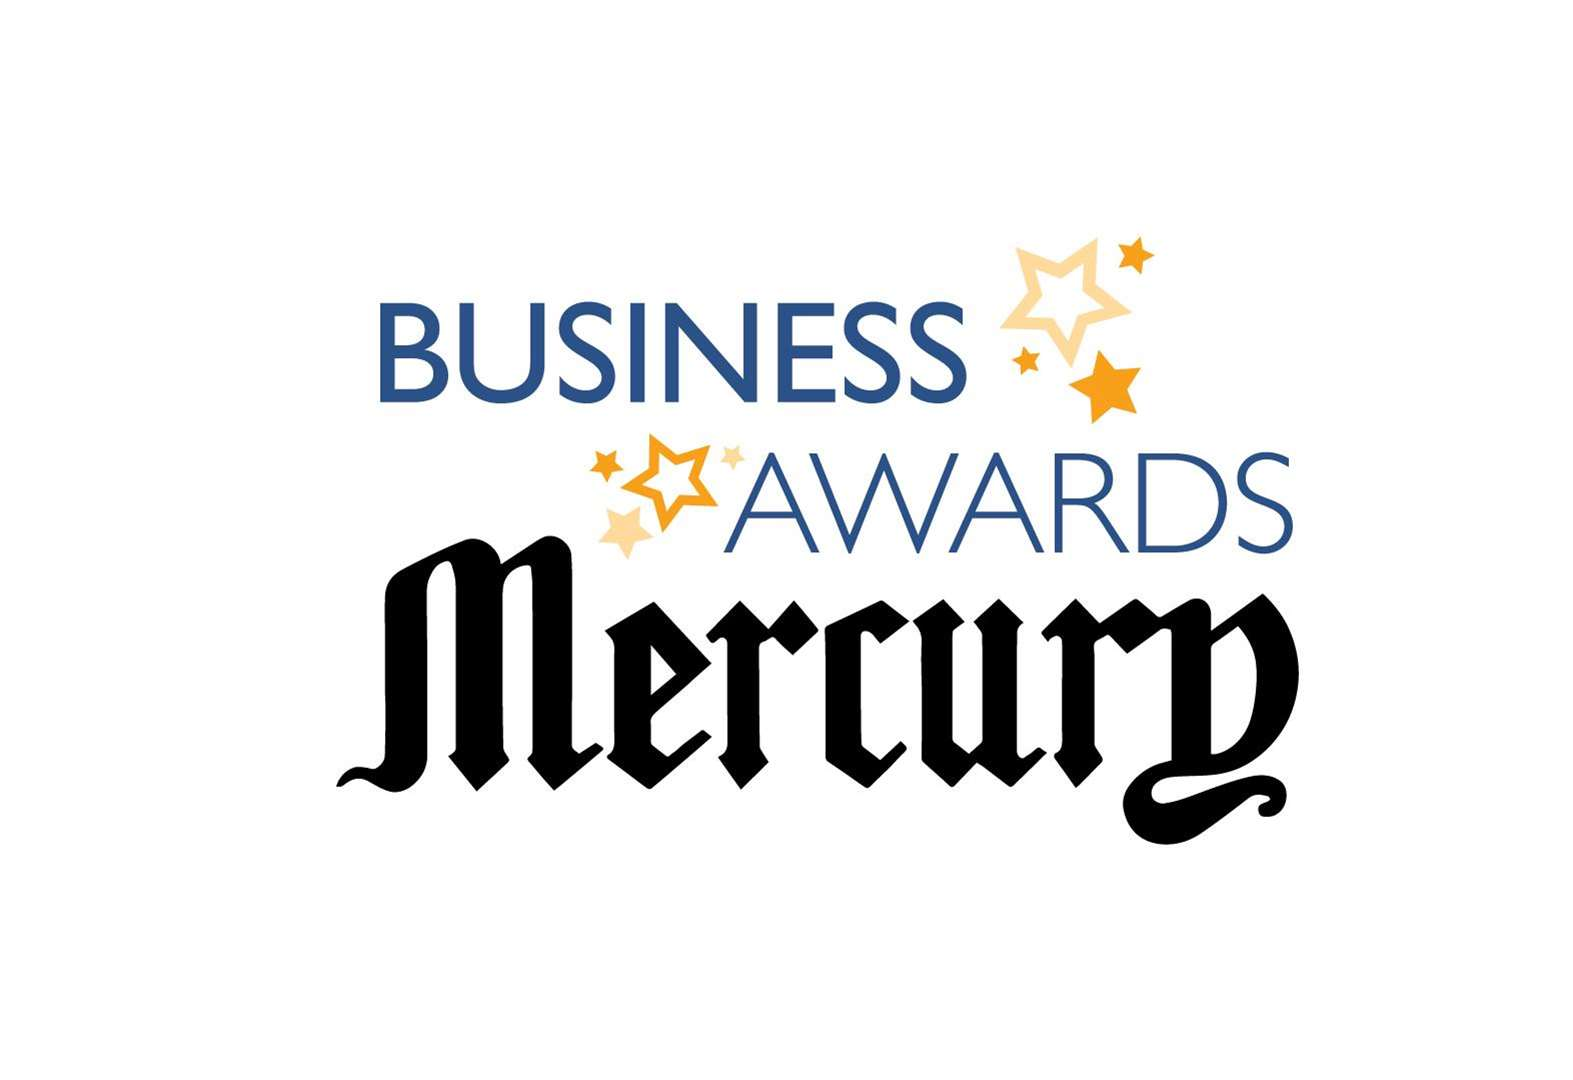 Congratulations to our Mercury Business Awards winners for 2018